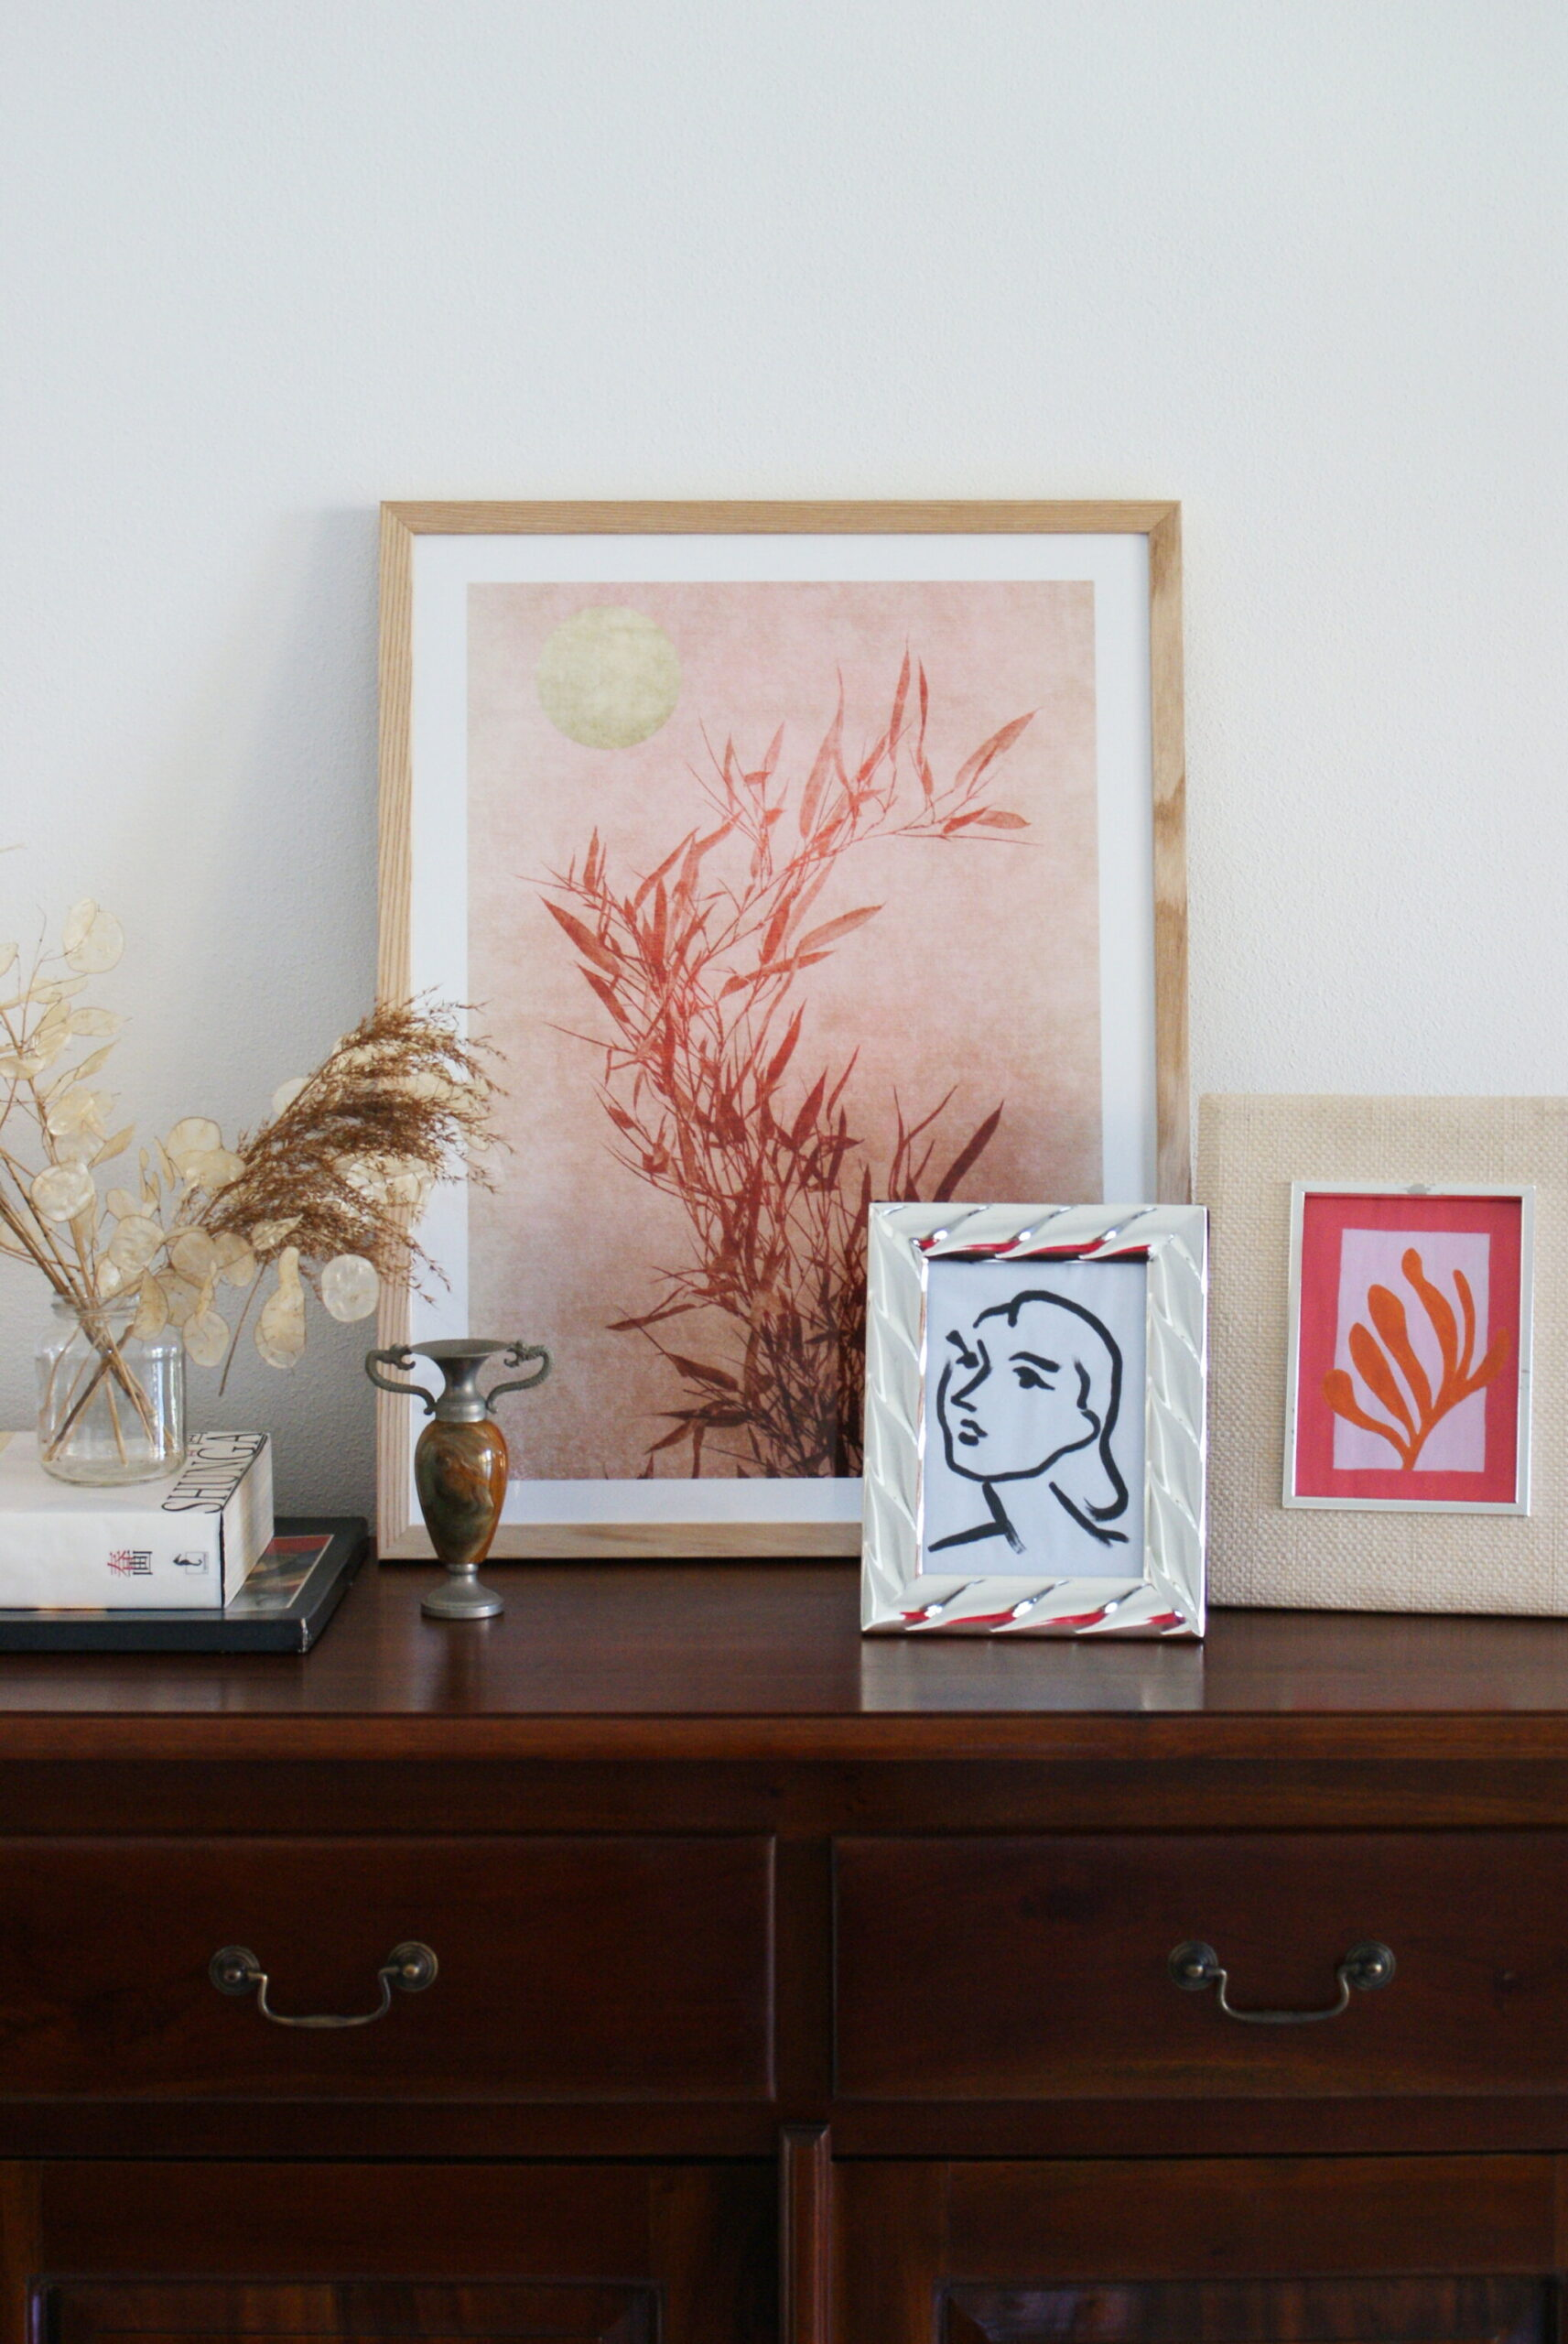 DIY MINIMALIST PAINTINGS INSPIRED BY HENRI MATISSE ART